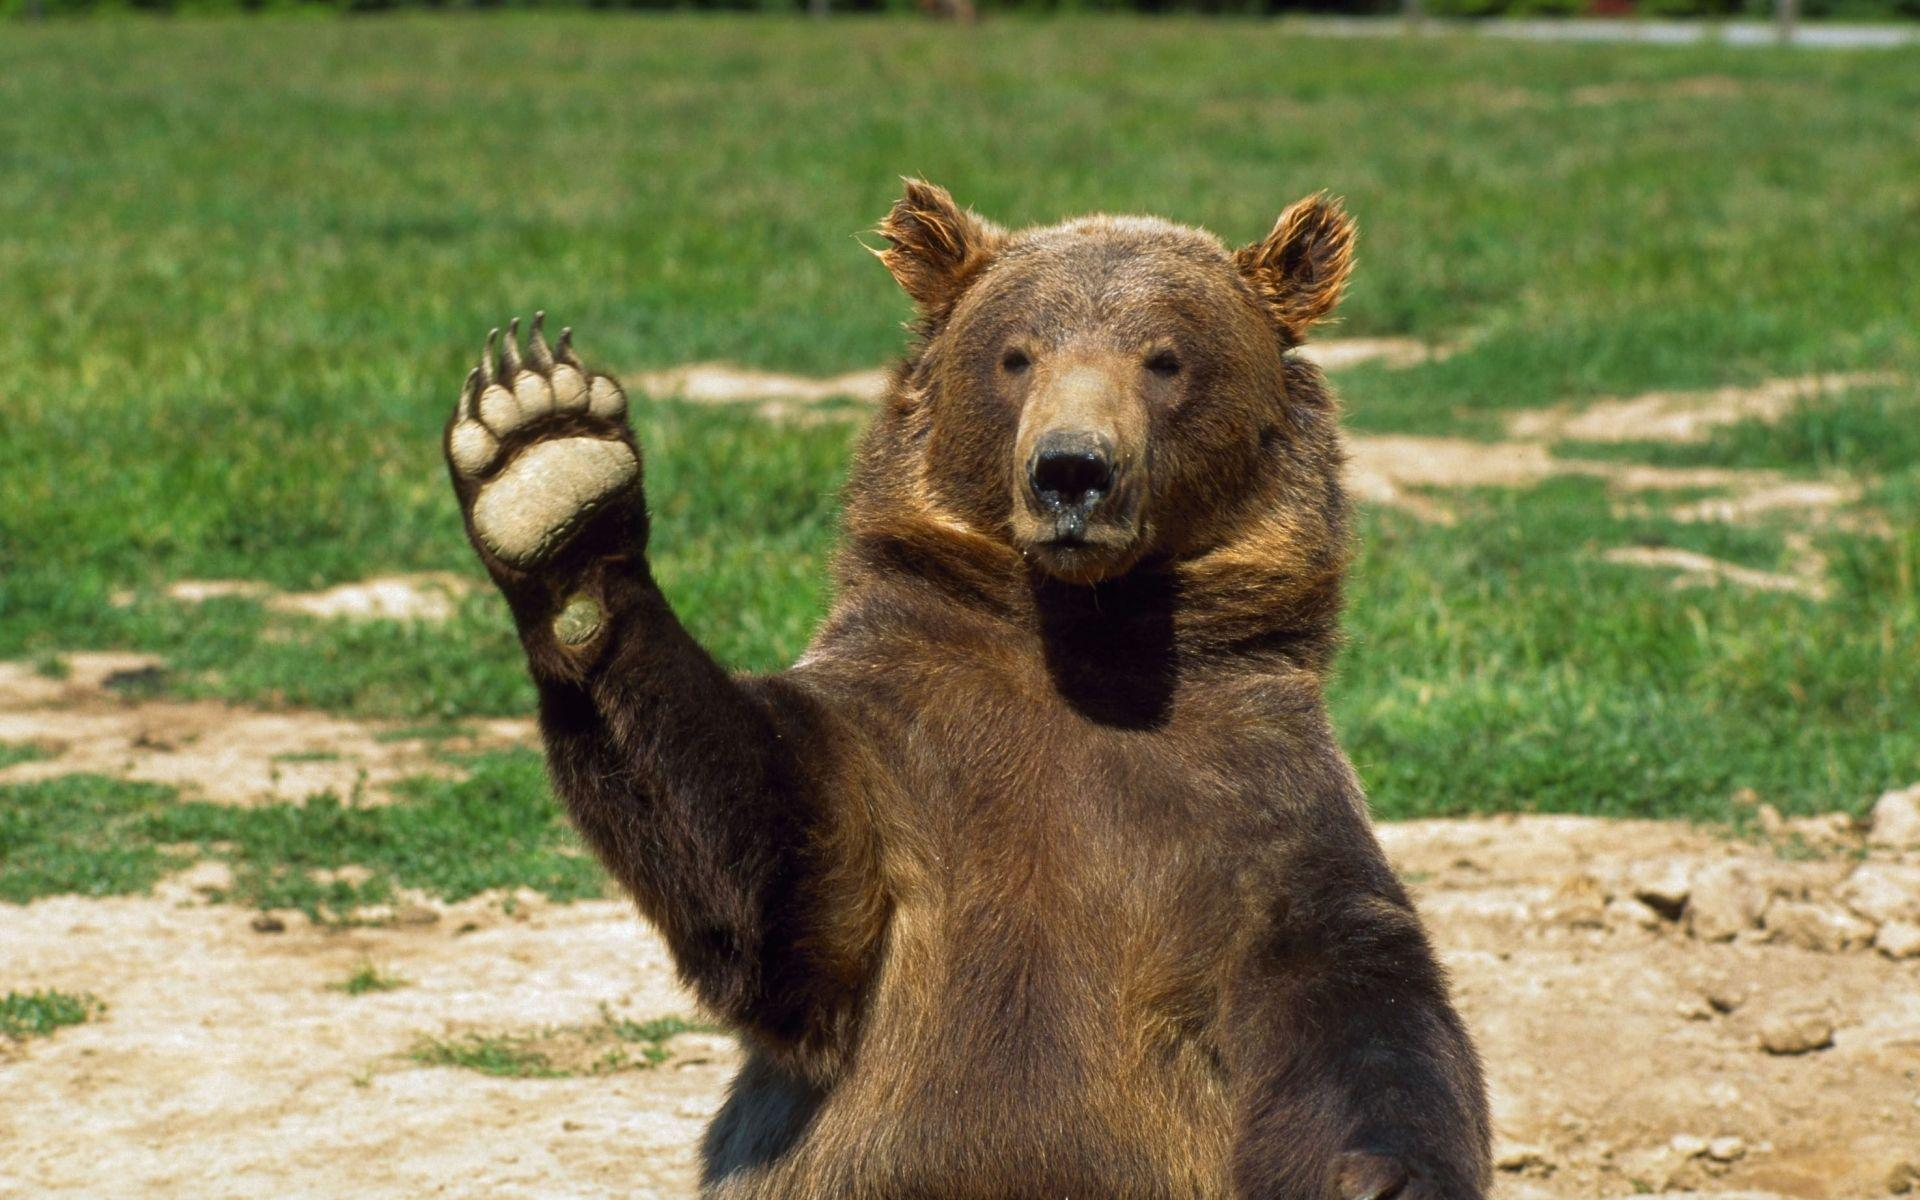 Funny grizzly bear pictures